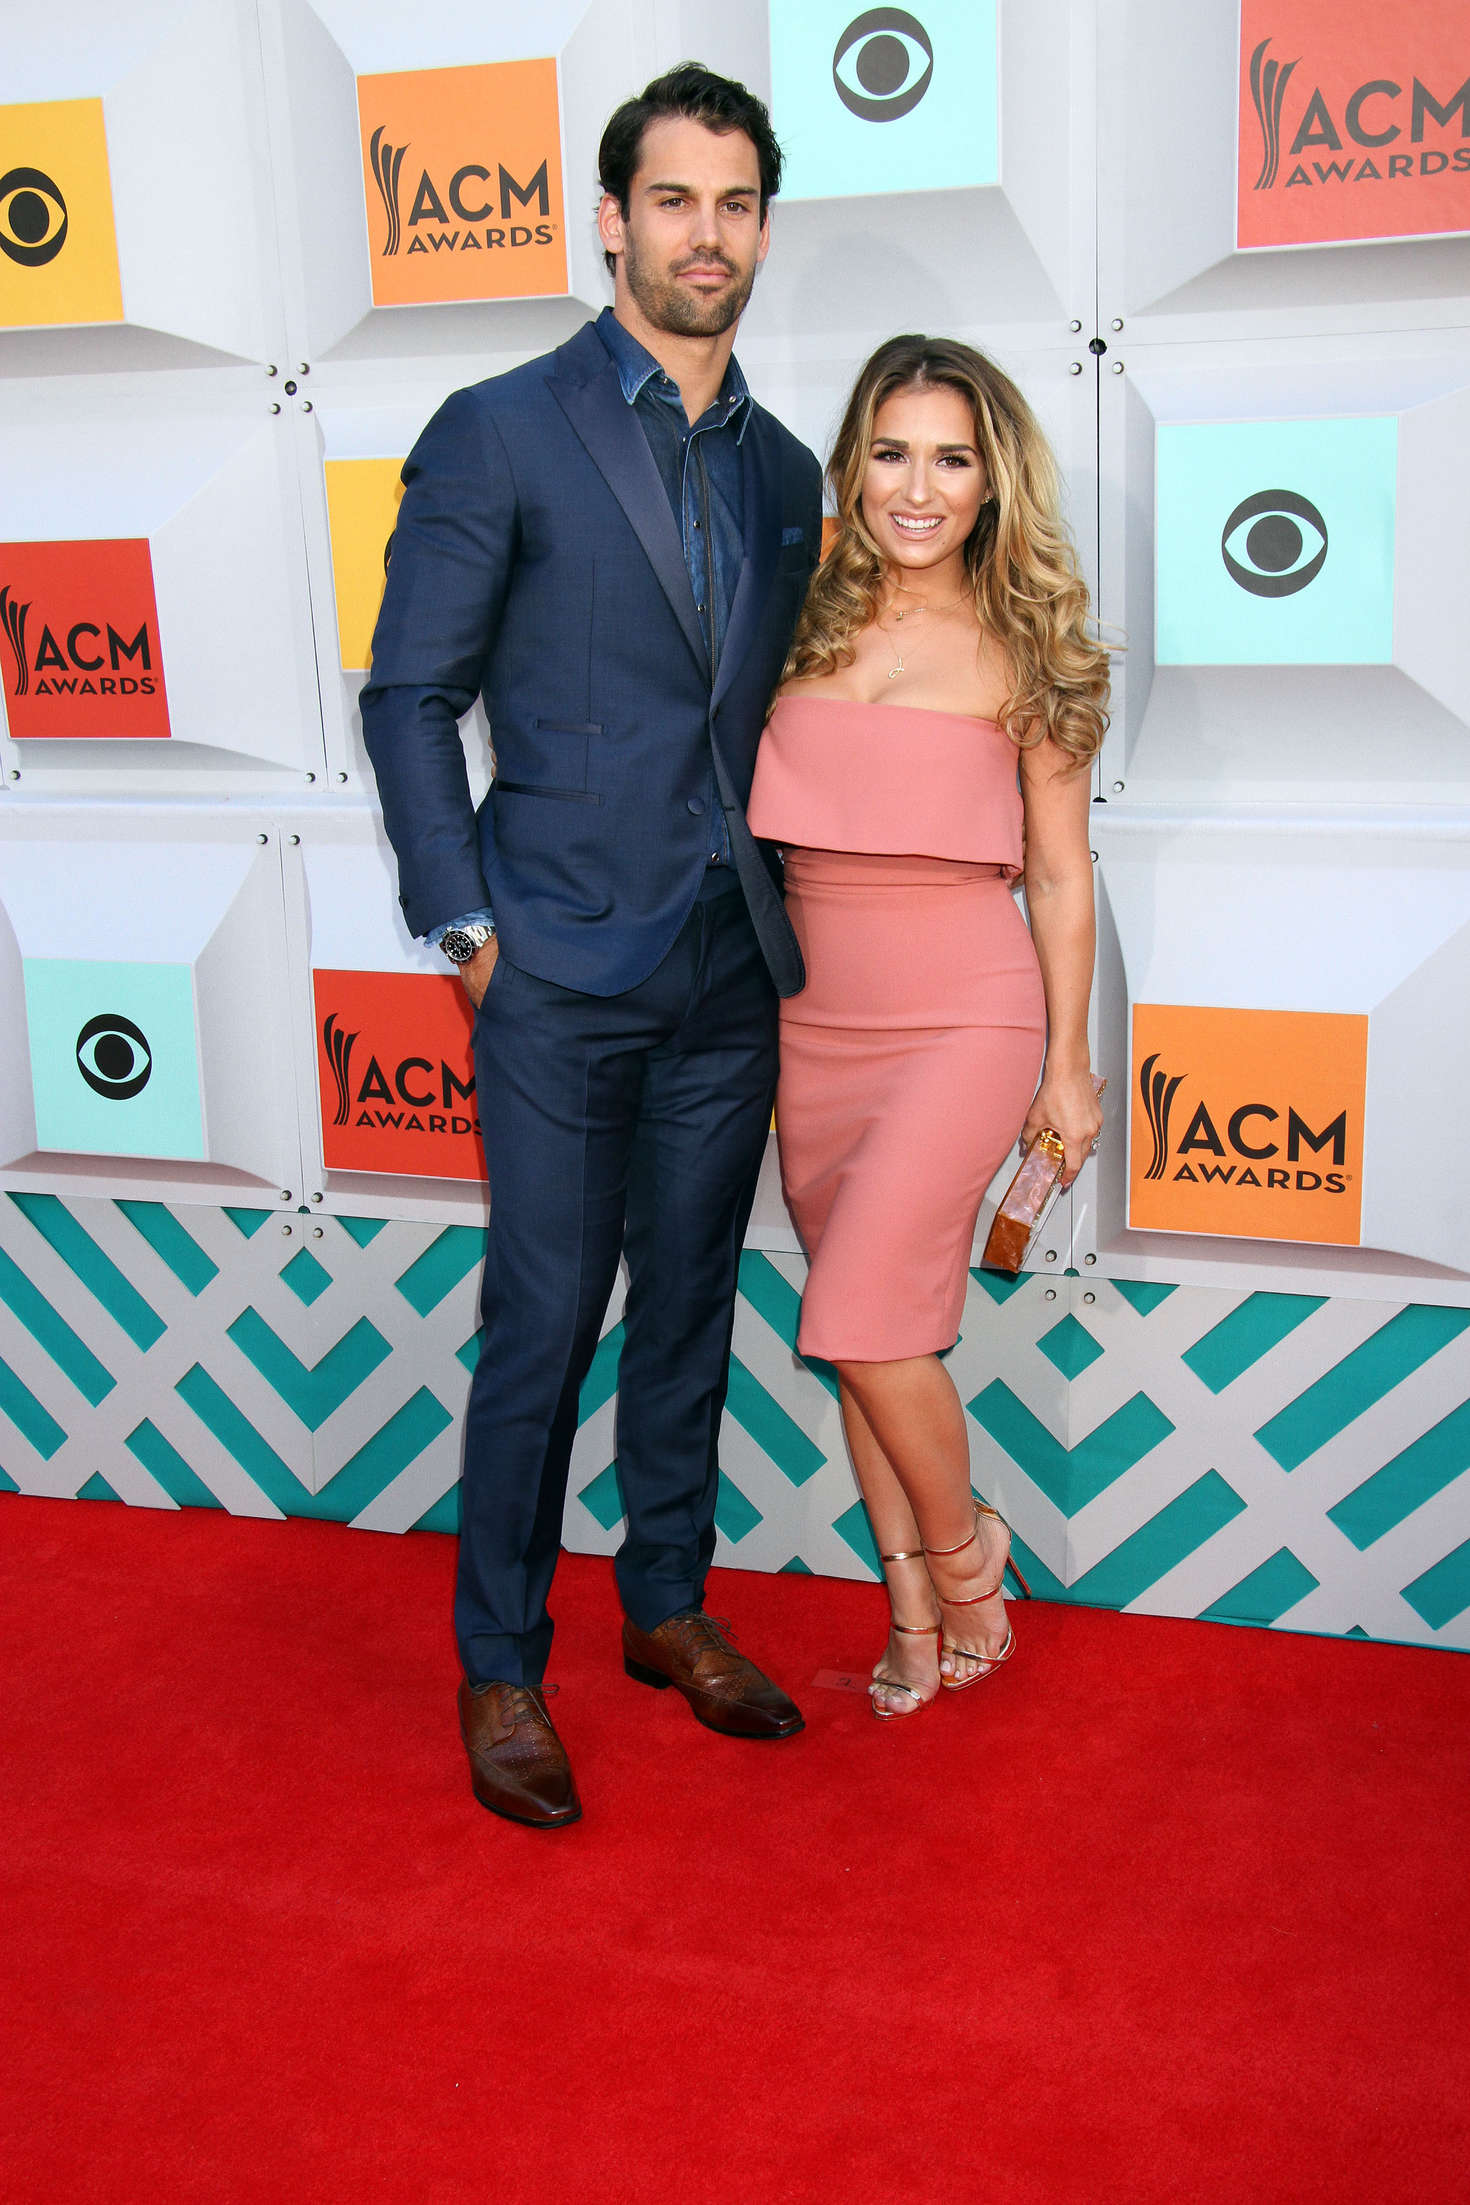 Jessie James Decker Academy of Country Music Awards in Las Vegas